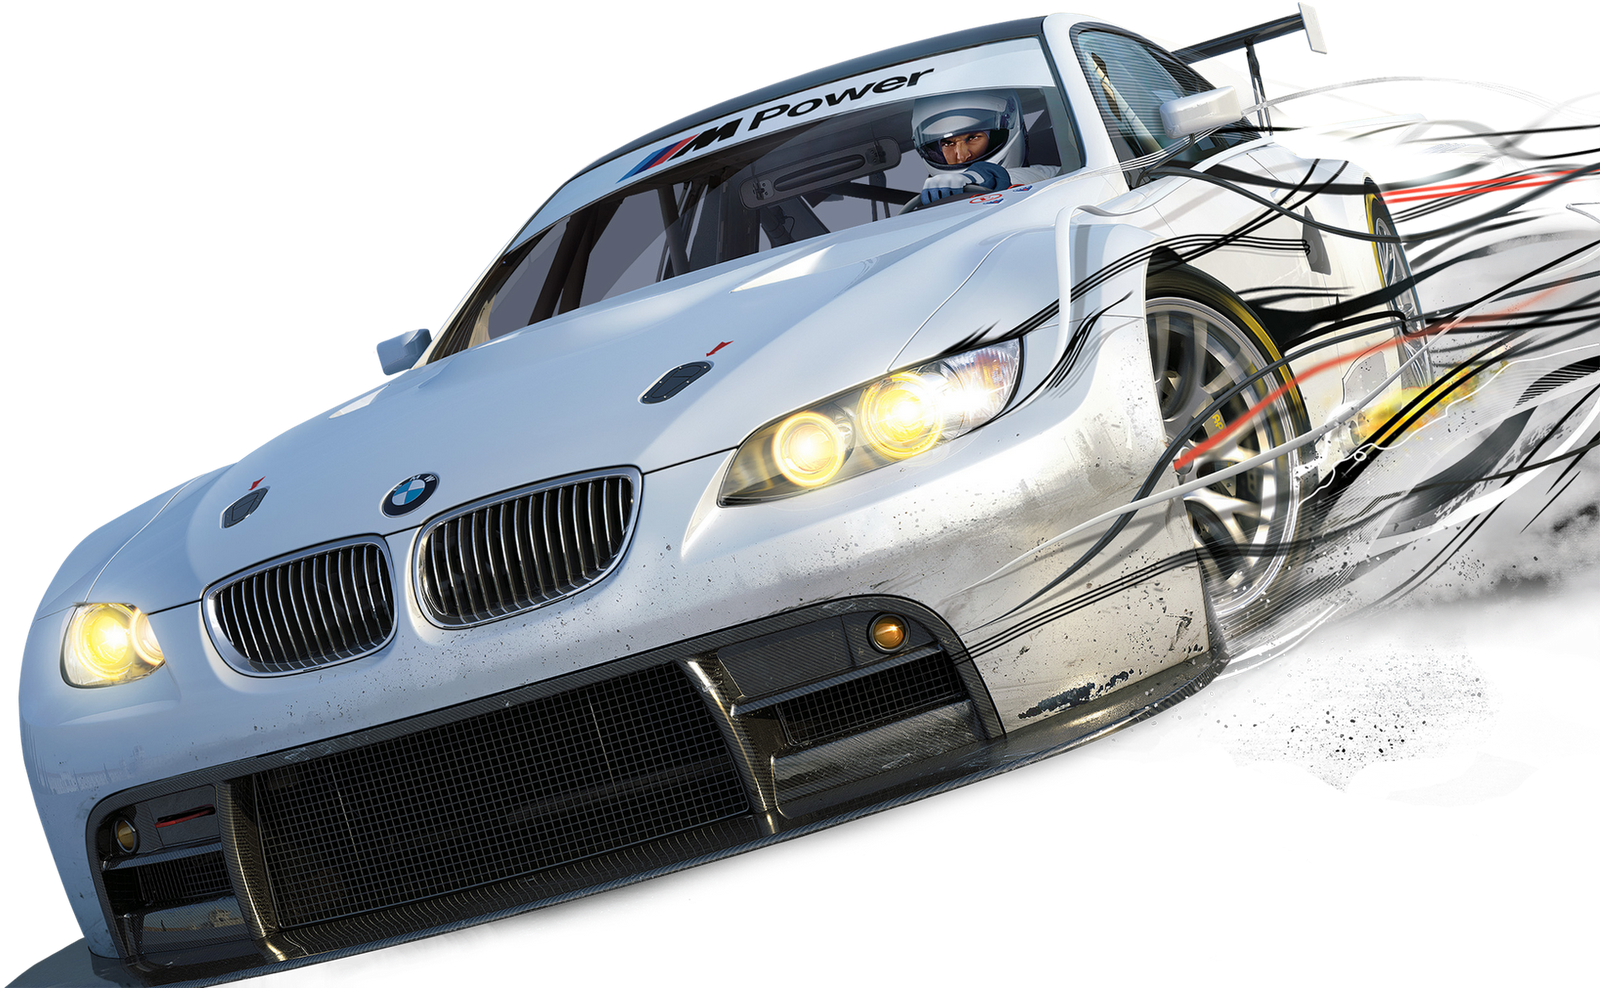 PNG PlusPng.com  - Speed PNG